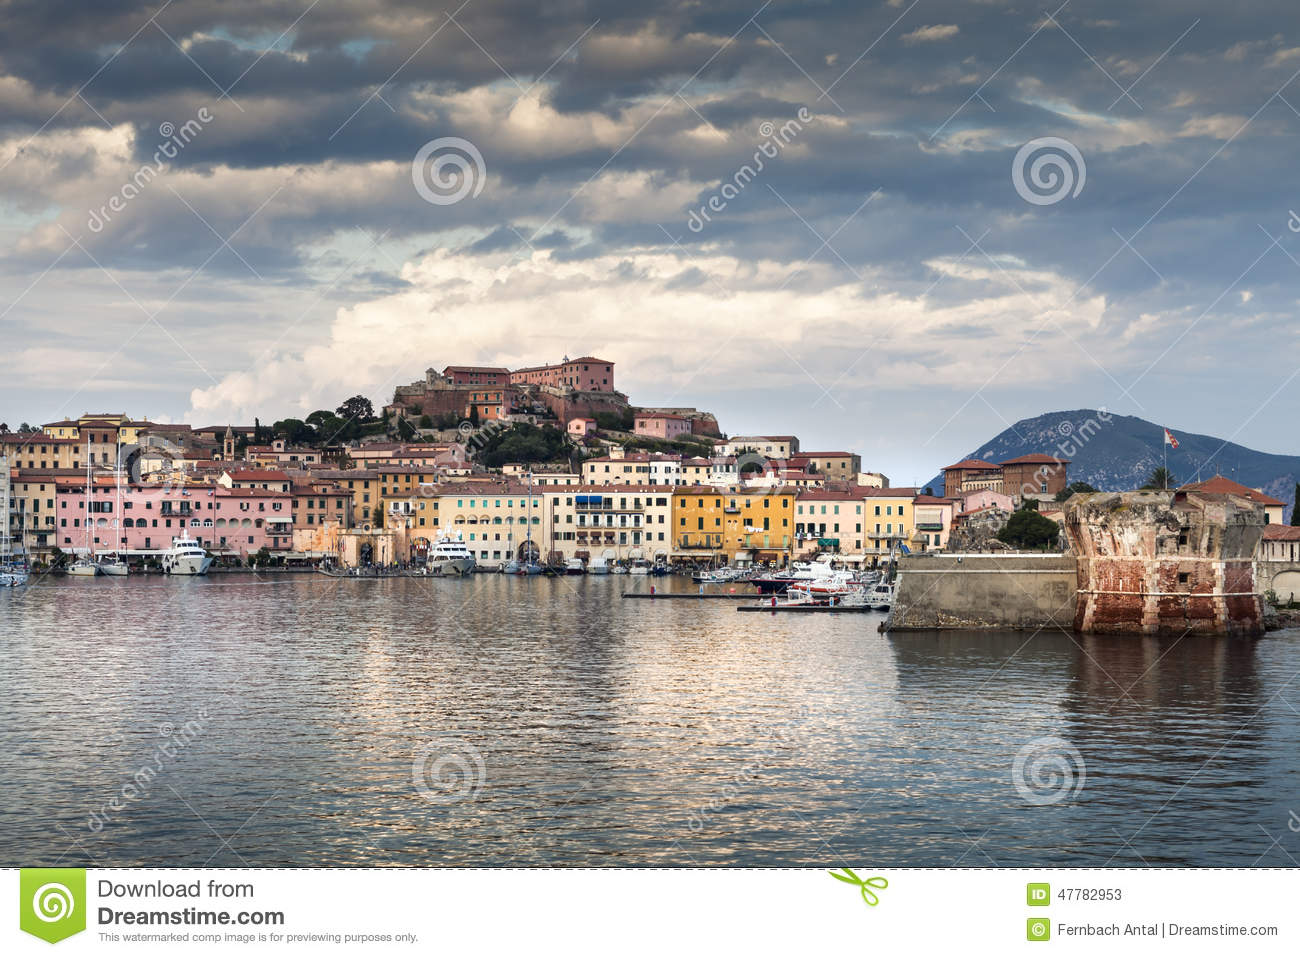 elba harbor | livius | Flickr